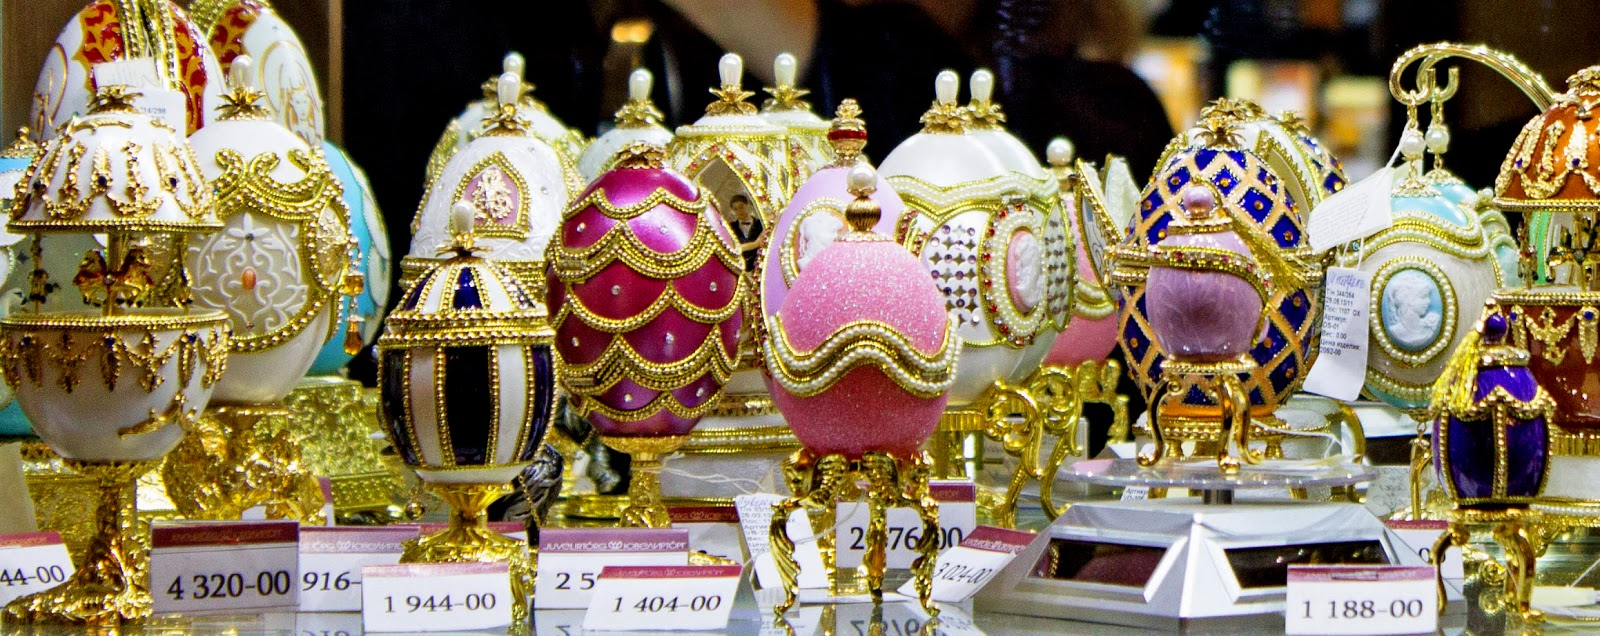 Faberge_store_eggs